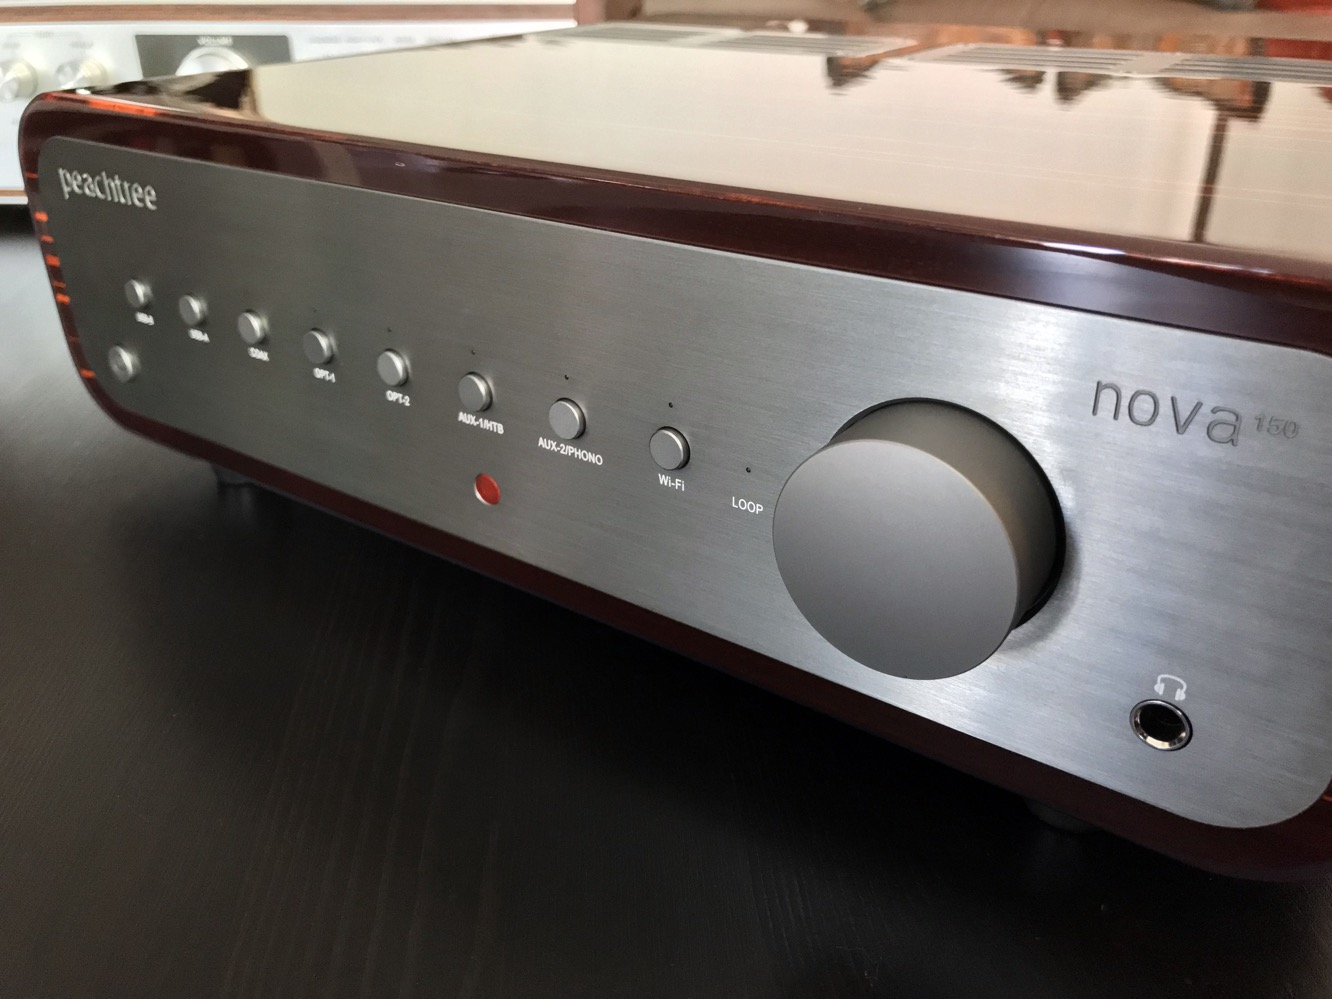 Review: Peachtree Nova150 Hi-Fi Amplifier 1